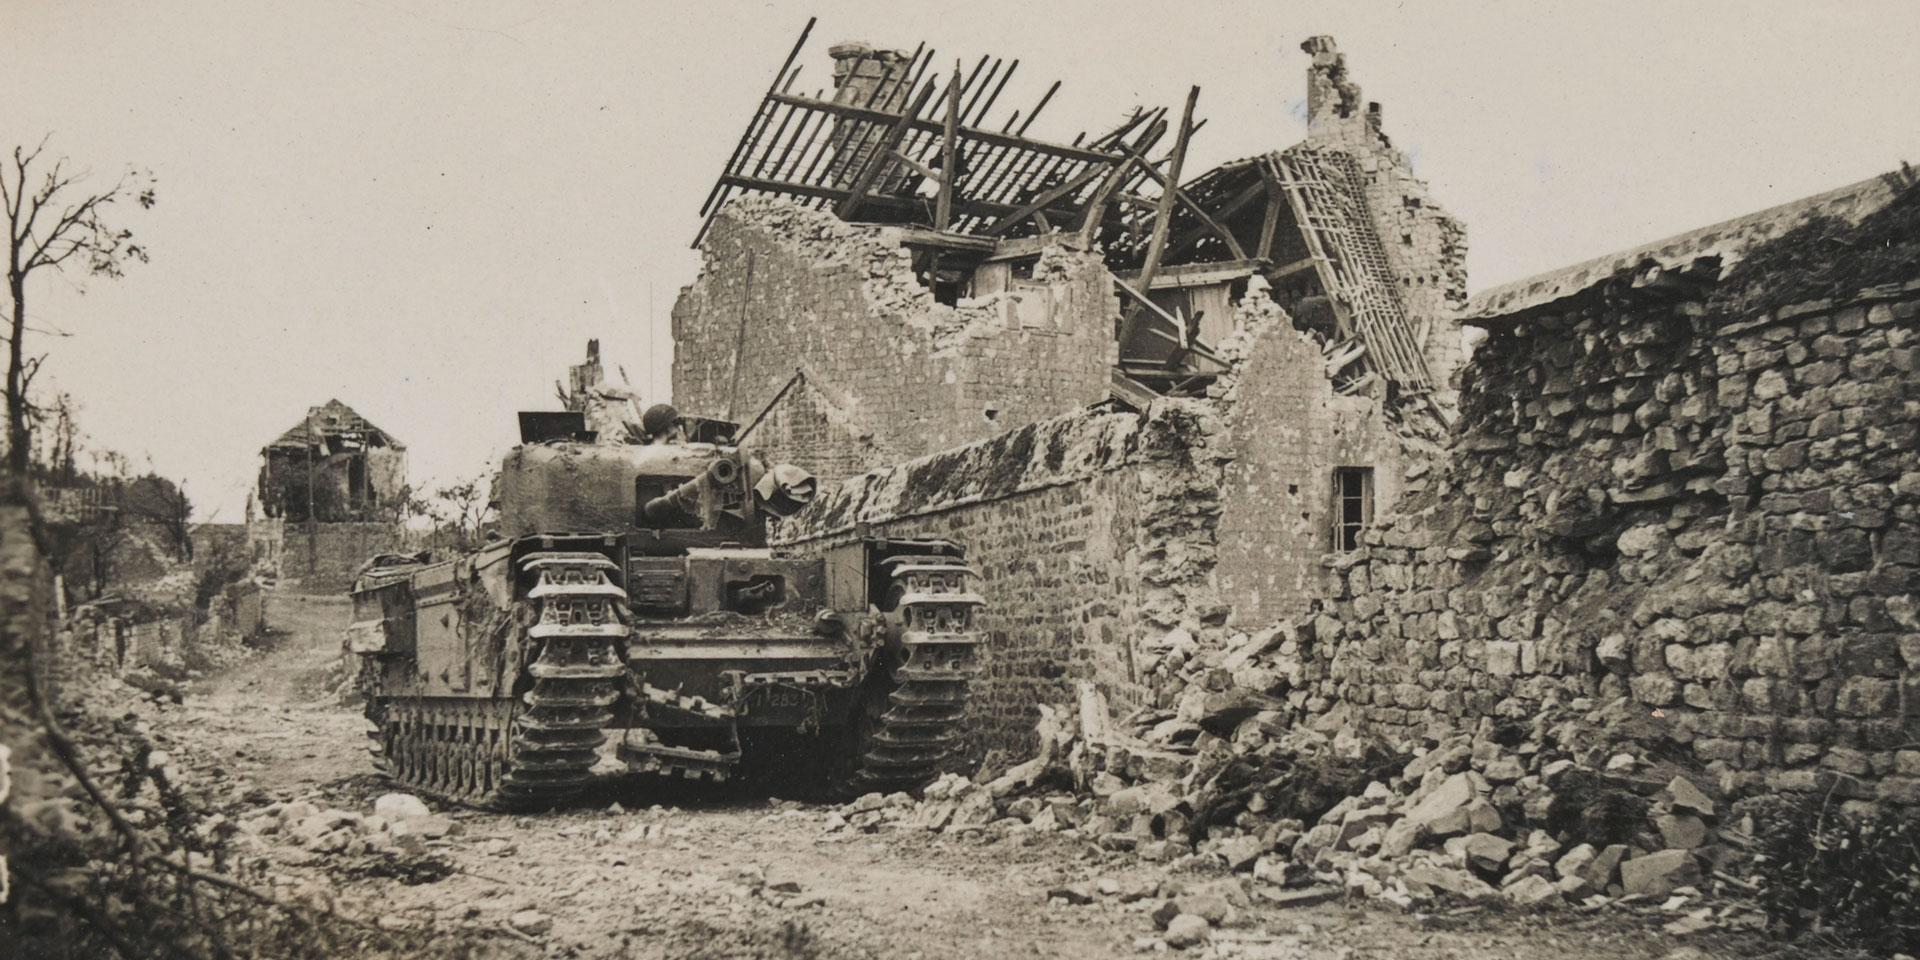 A Churchill tank awaits possible enemy counter-attack in a ruined village, 1944